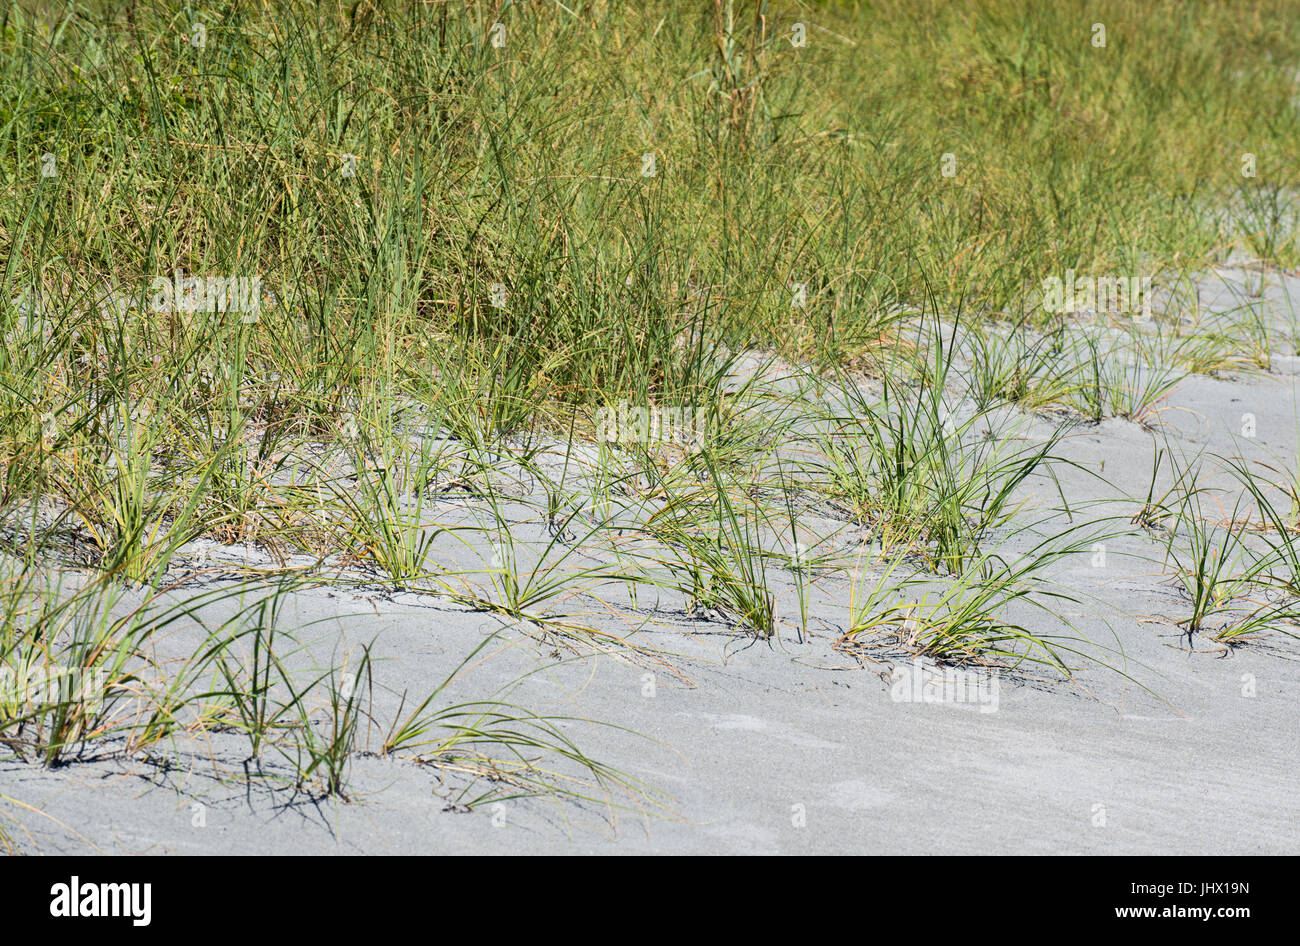 dune grasses and vegetation on a Florida beach - Stock Image